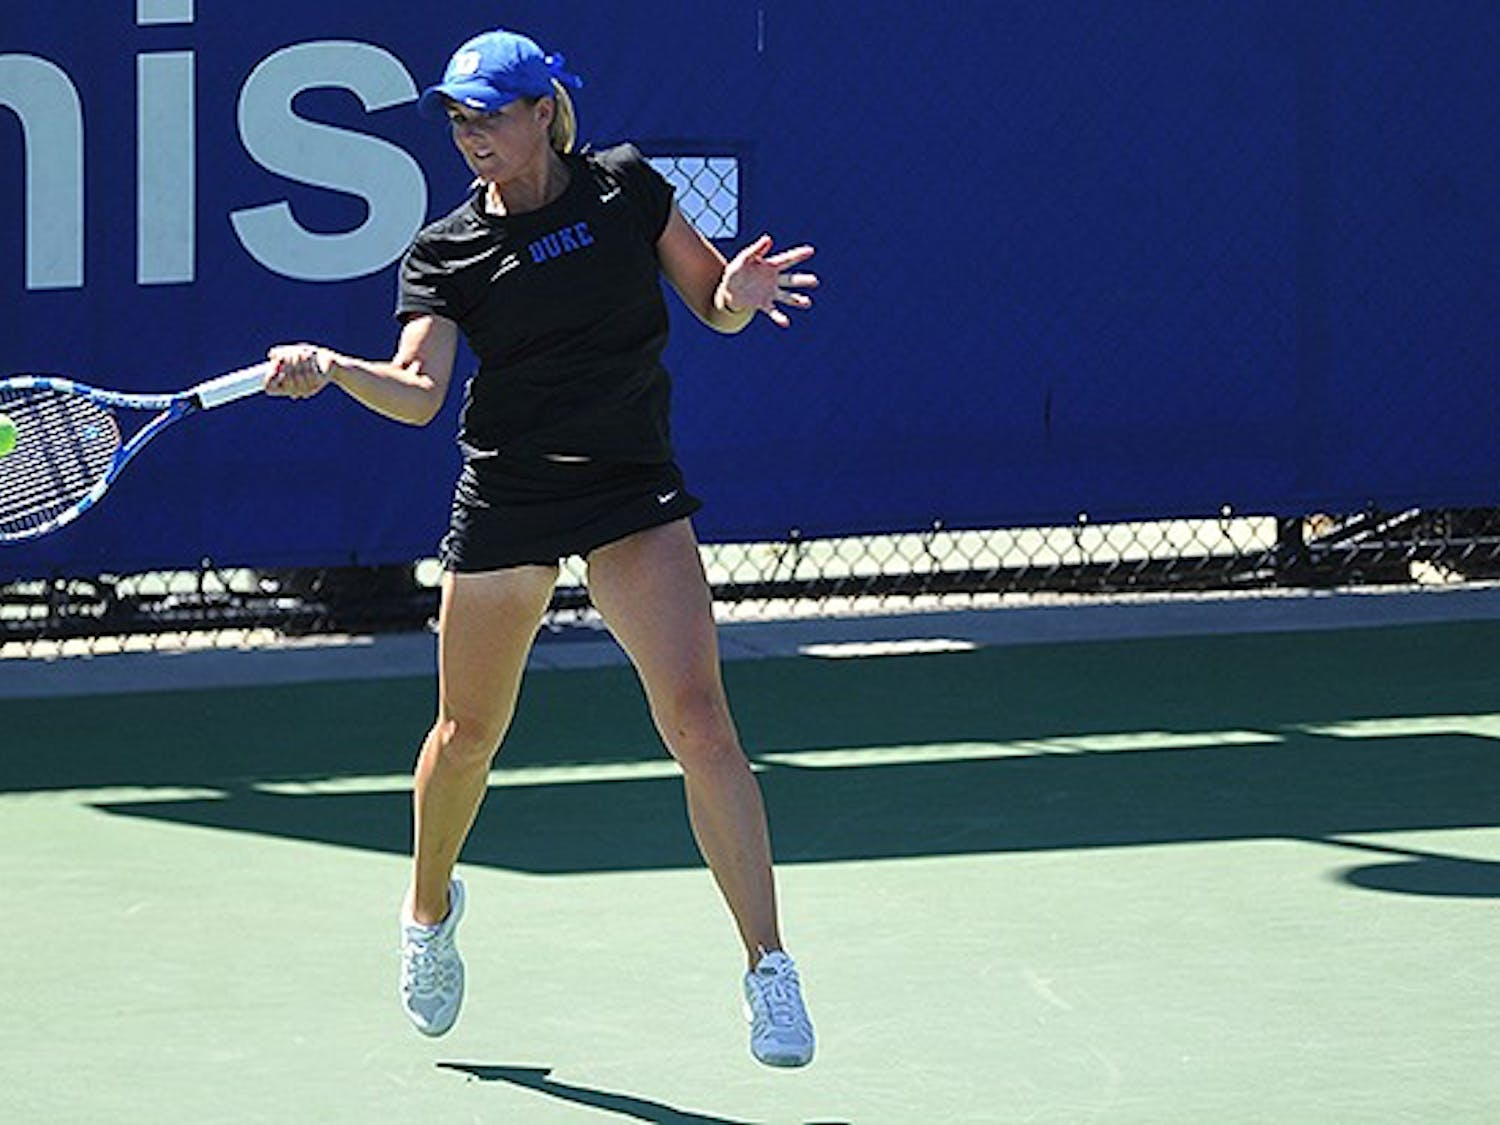 The Blue Devils hope to repeat their performance against Florida earlier this season, when Duke swept the Gators 4-0.